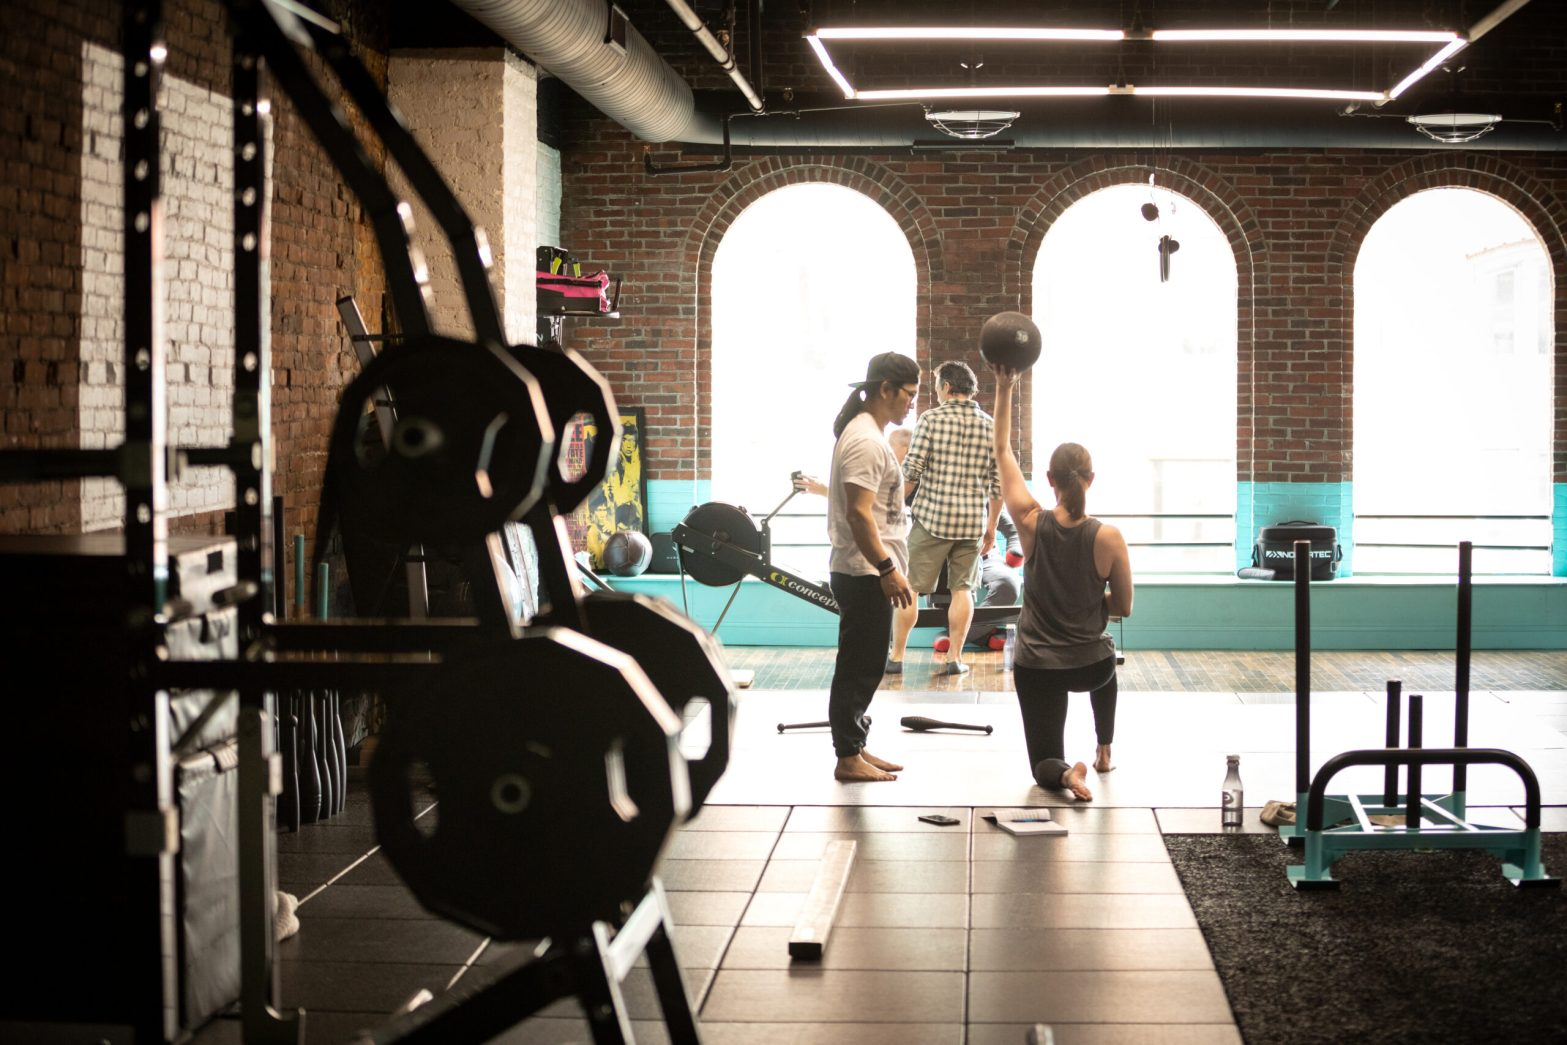 The perfect gym.